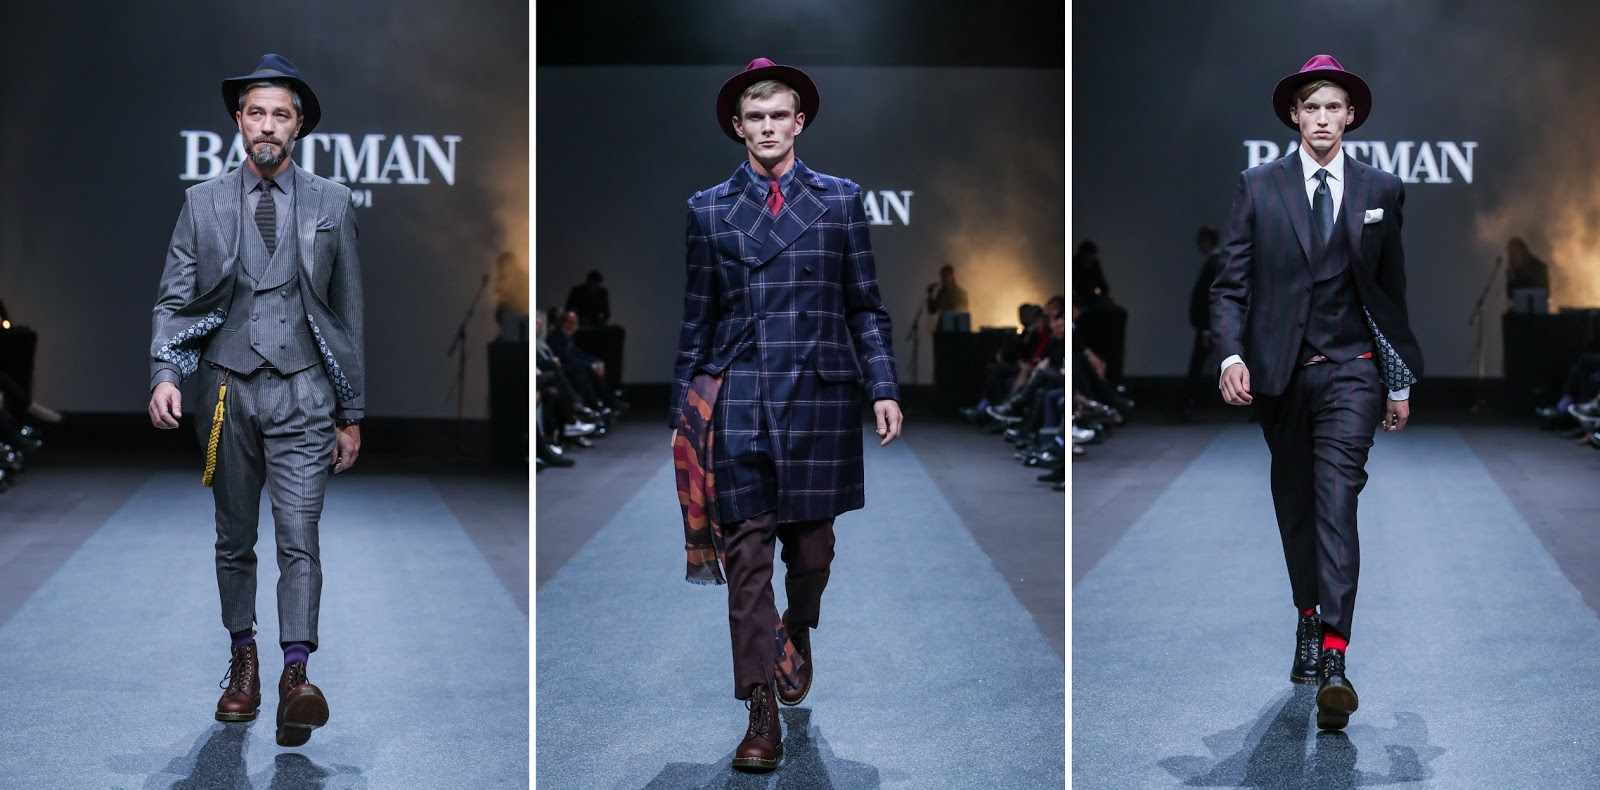 tallinn fashion week 2016 baltman